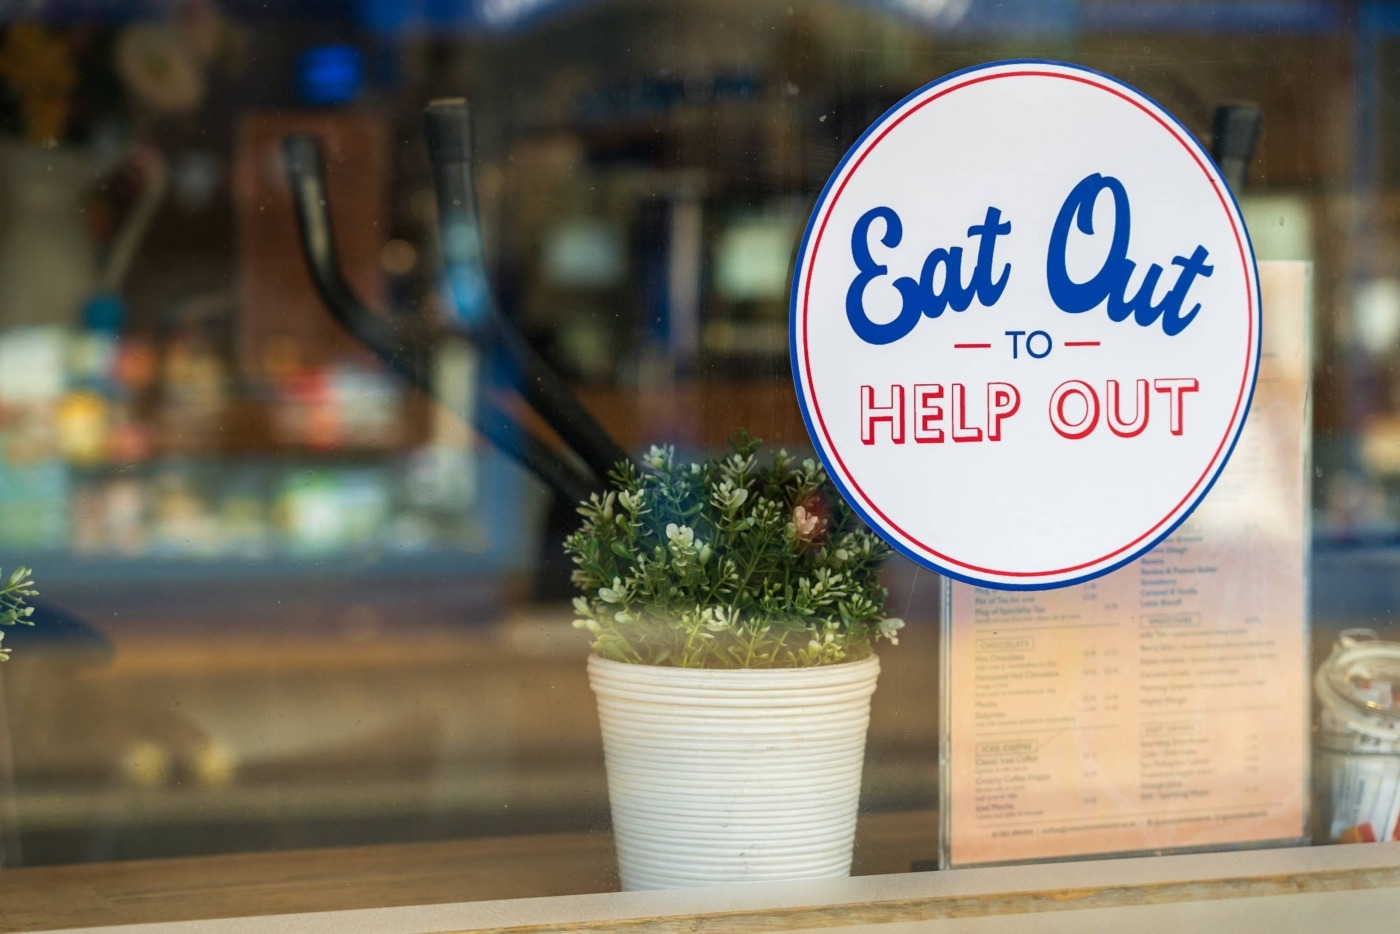 Eat out to help out / Image: Unsplash